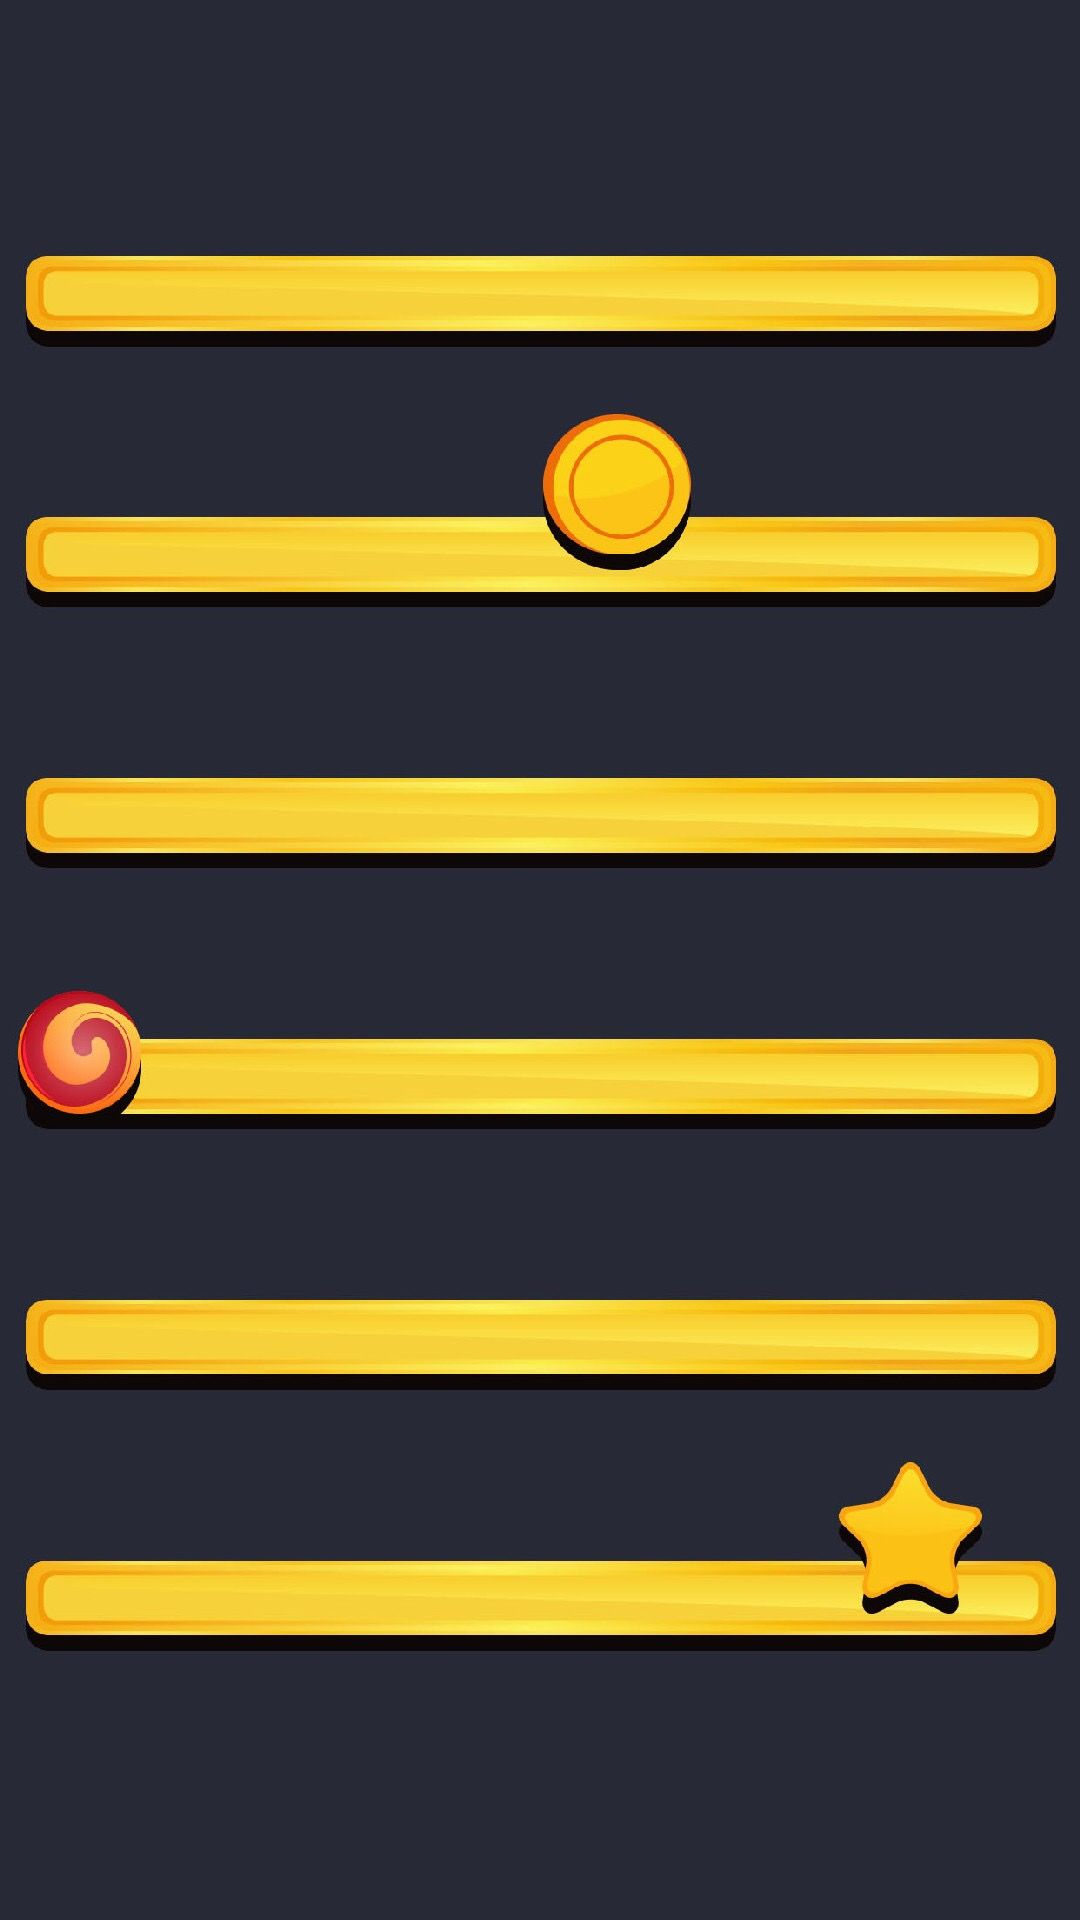 a†'a†'tap and get the free app shelves simple black yellow minimalistic star coin